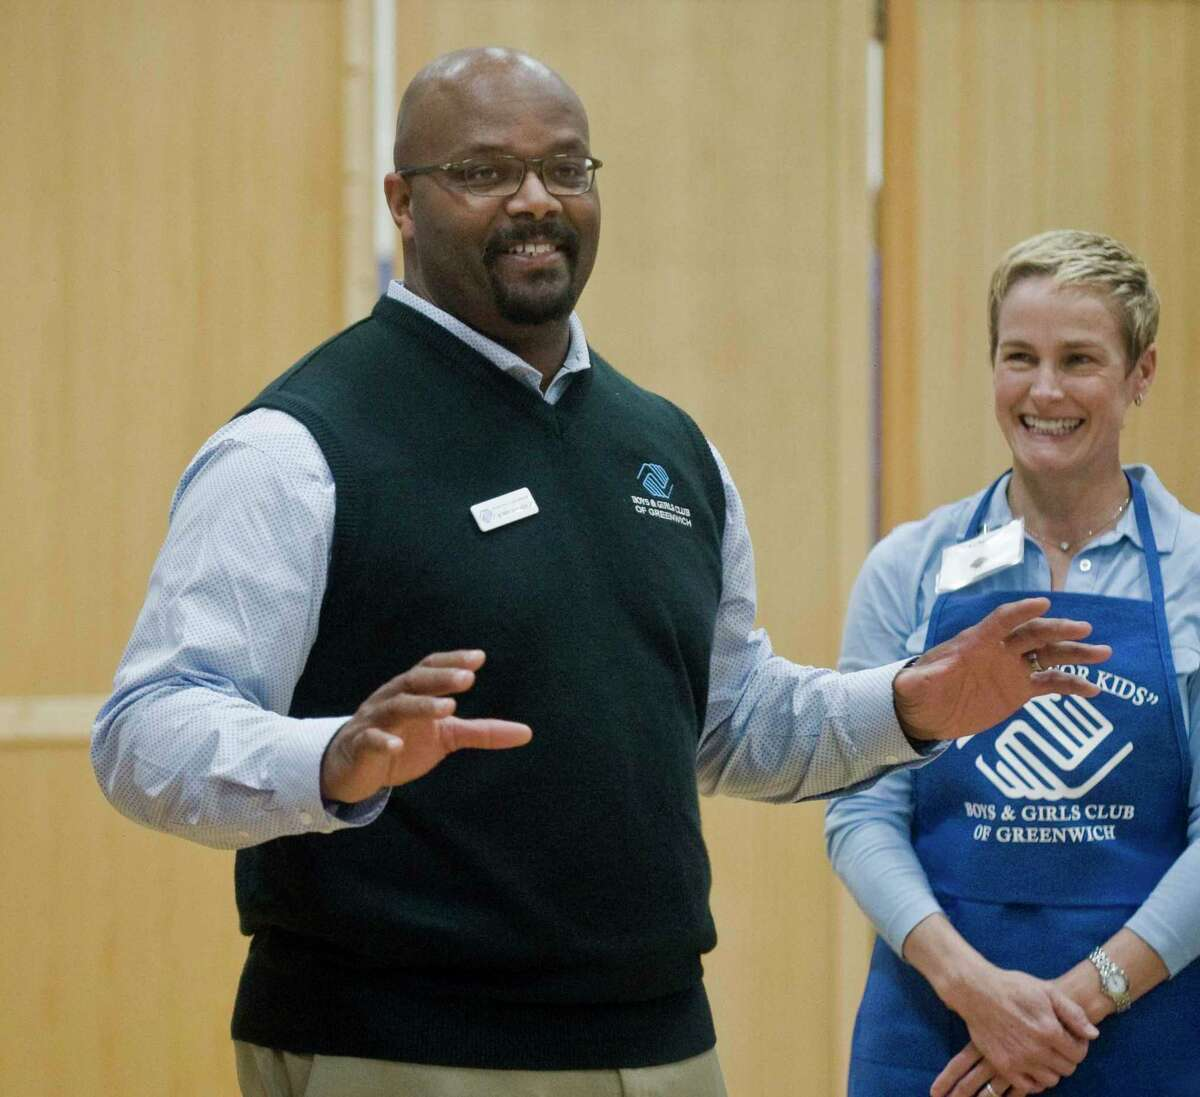 Bobby Walker Jr., CEO of the Boys and Girls Club of Greenwich, will be joining Greenwich Academy as its first Assistant Head of School for Student and Community Life, effective summer 2020.